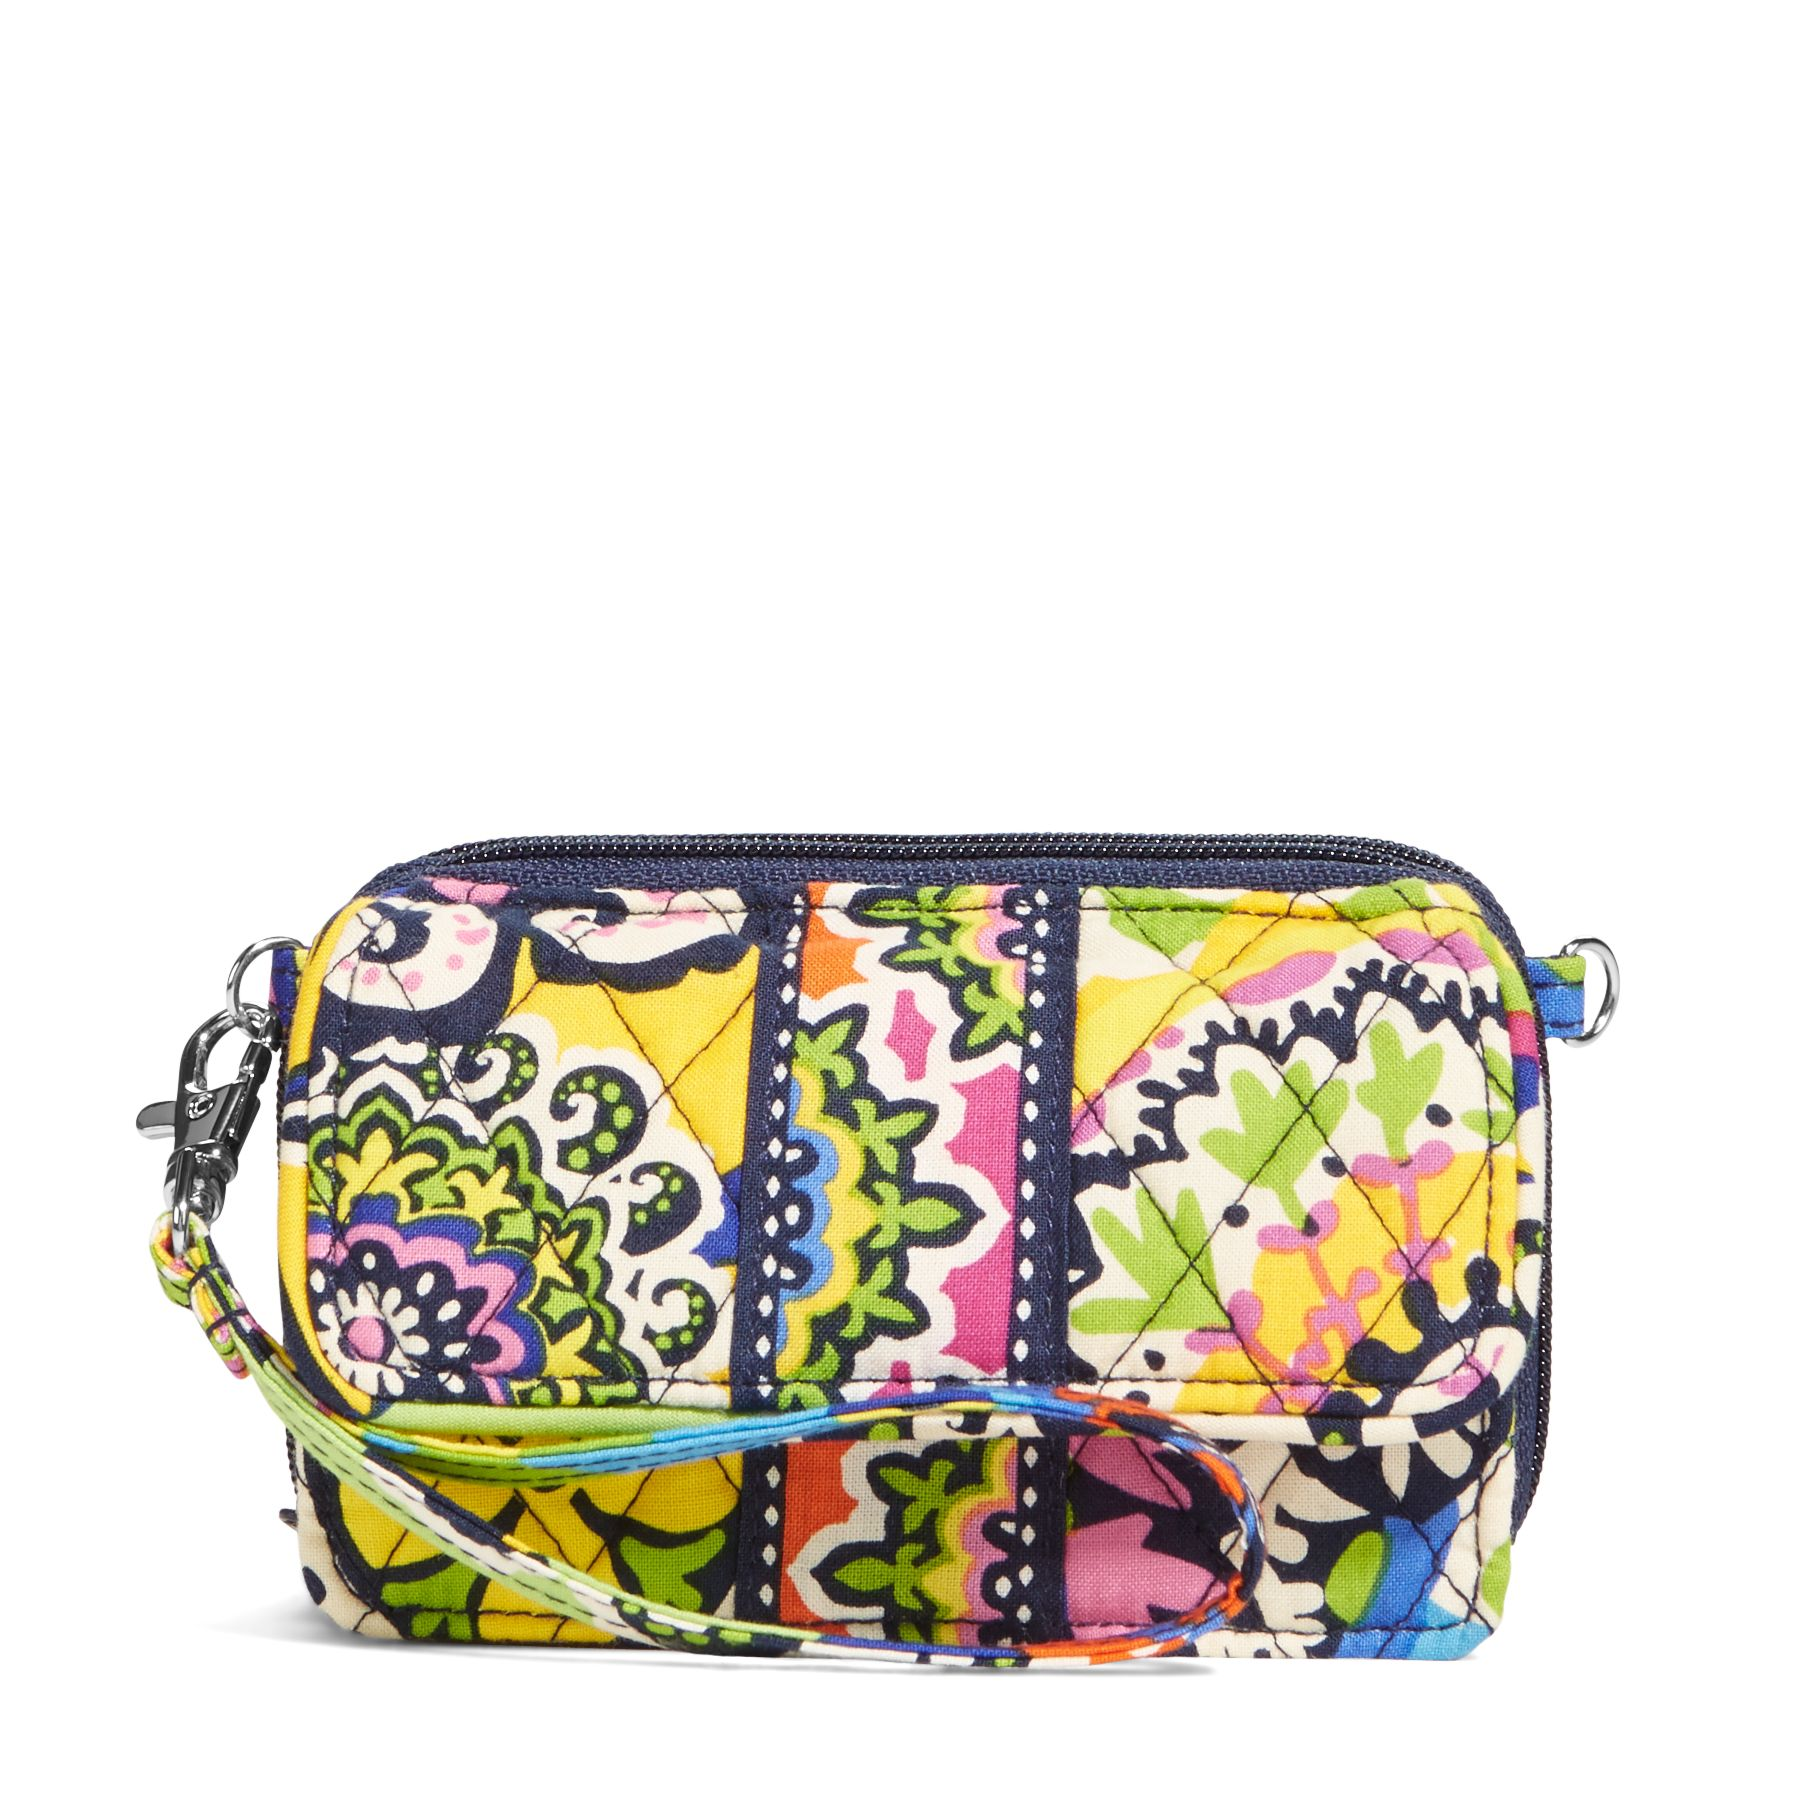 Vera Bradley All in One Crossbody and Wristlet in Rio